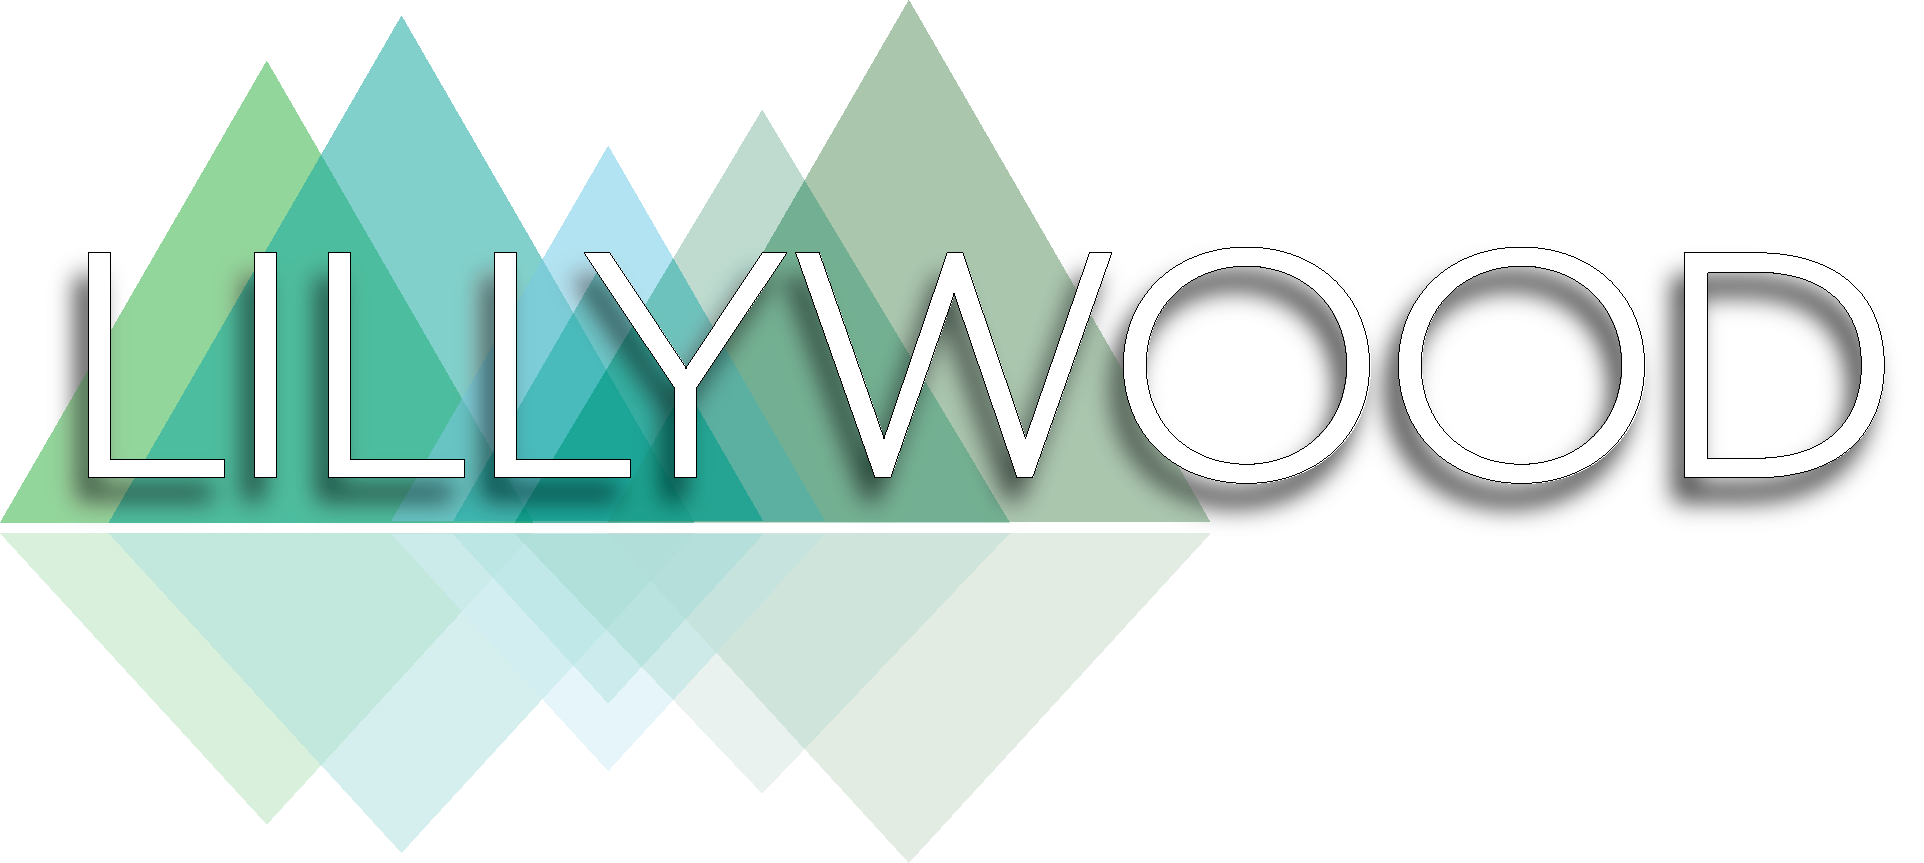 LILLYWOOD